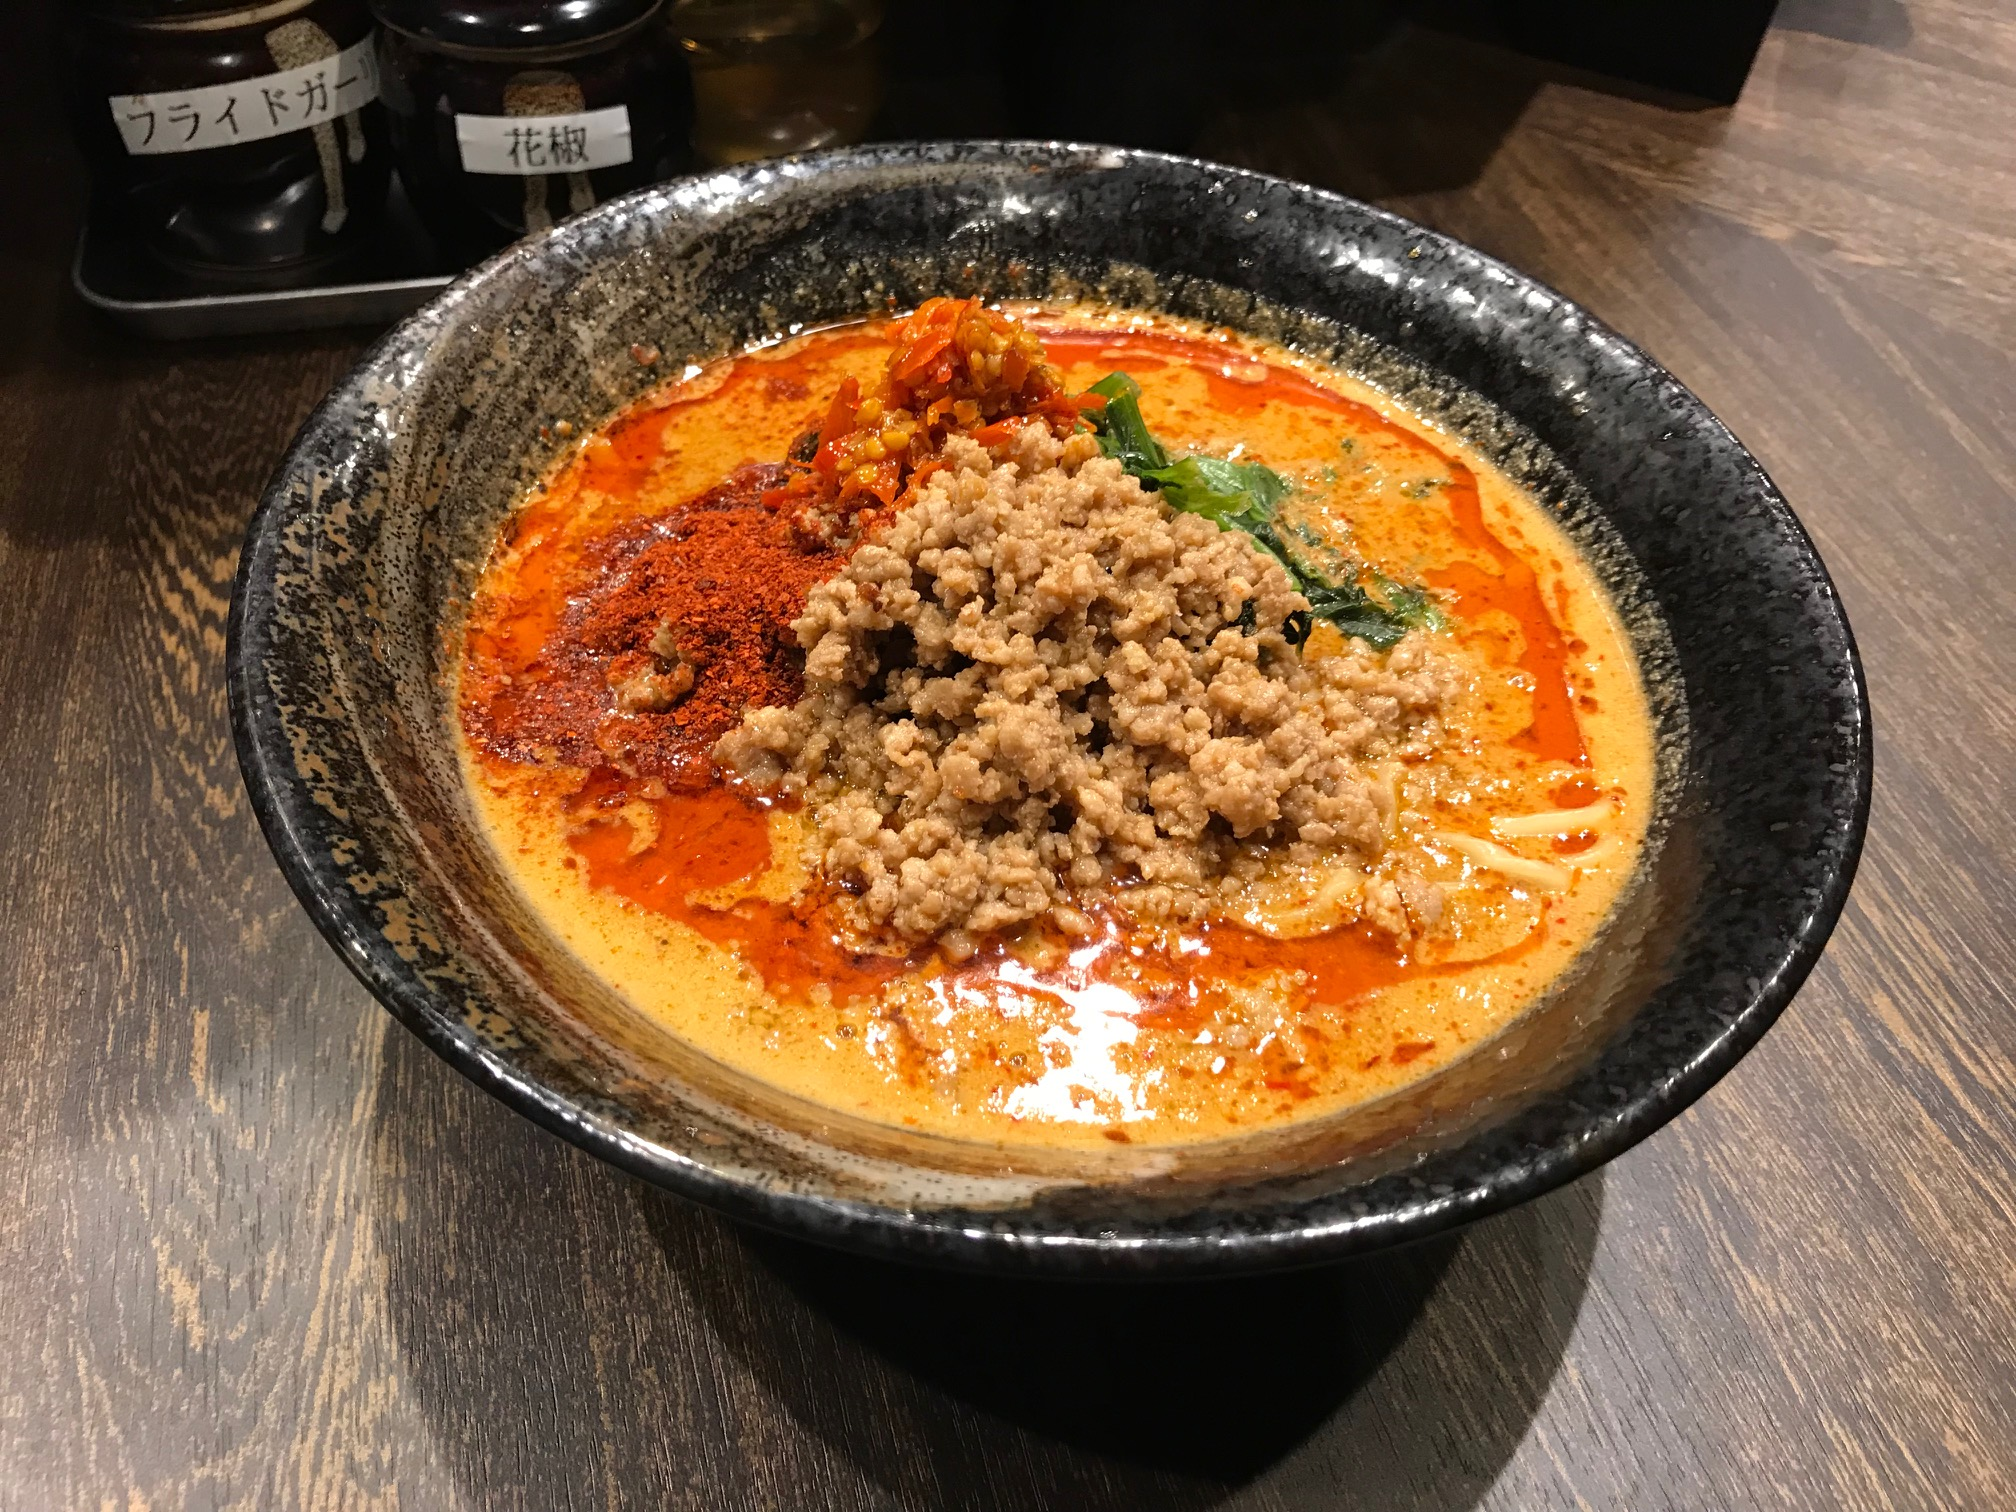 The Tantanmen from Hell Level 3, Asura